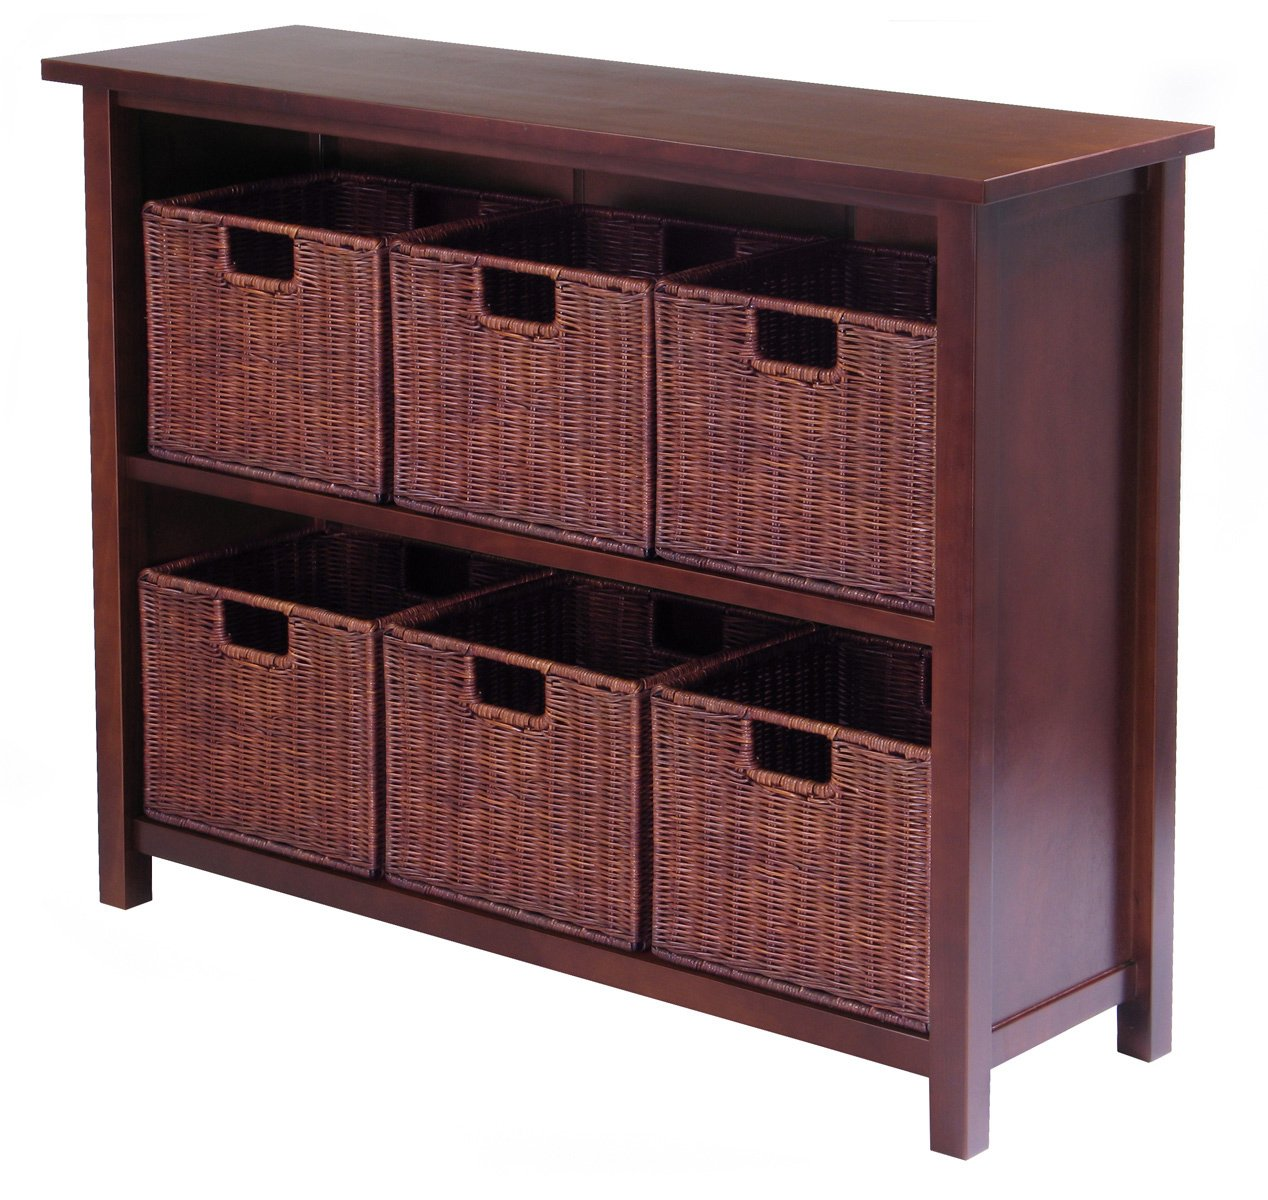 Winsome Wood Milan Wood 3 Tier Open Cabinet and 6 Rattan Baskets in Antique Walnut Finish 94510 WN1423